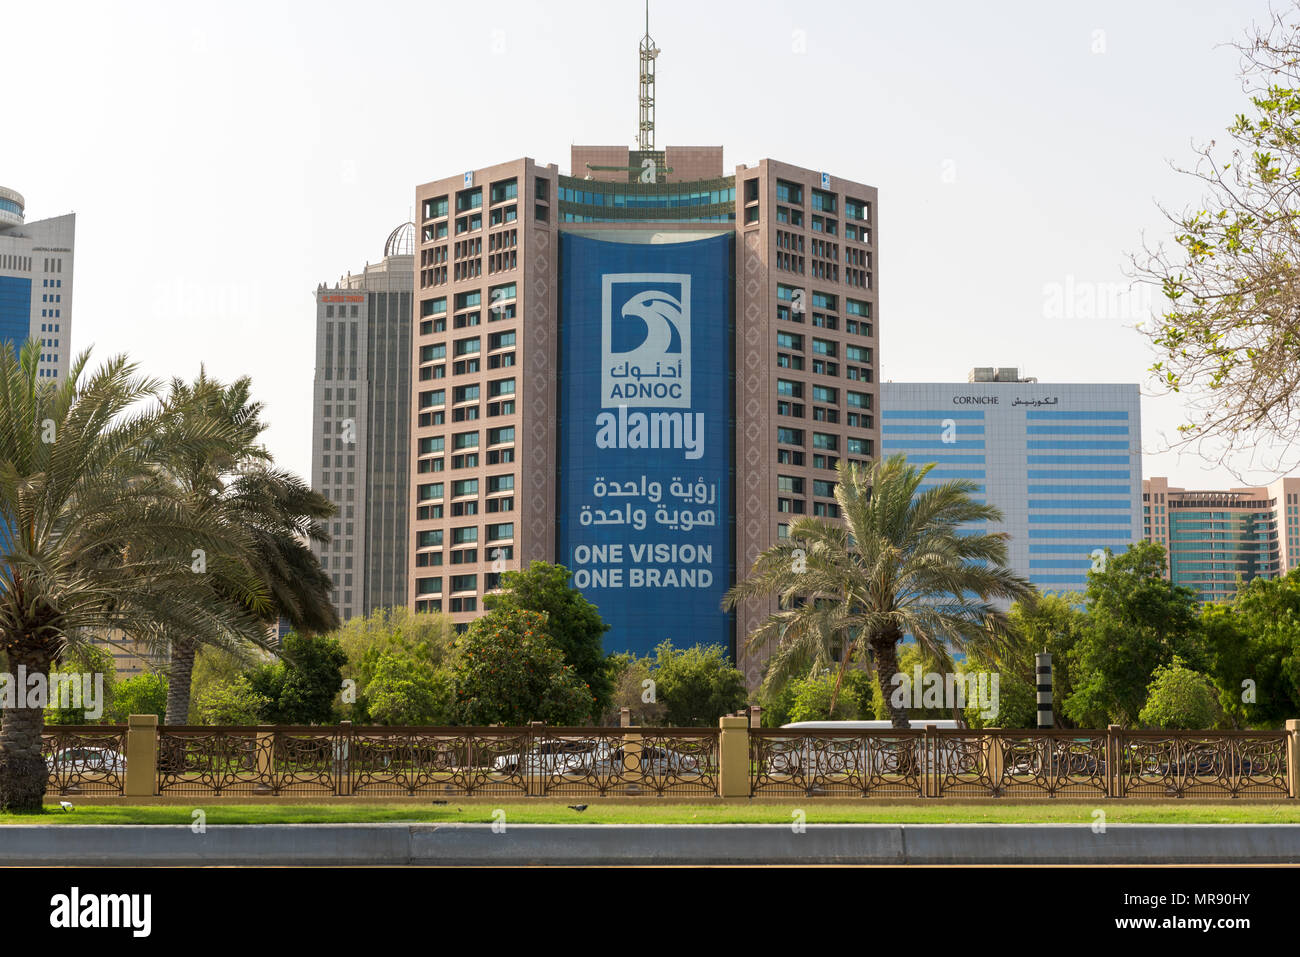 Office building of ADNOC (Abu Dhabi National Oil Company) on